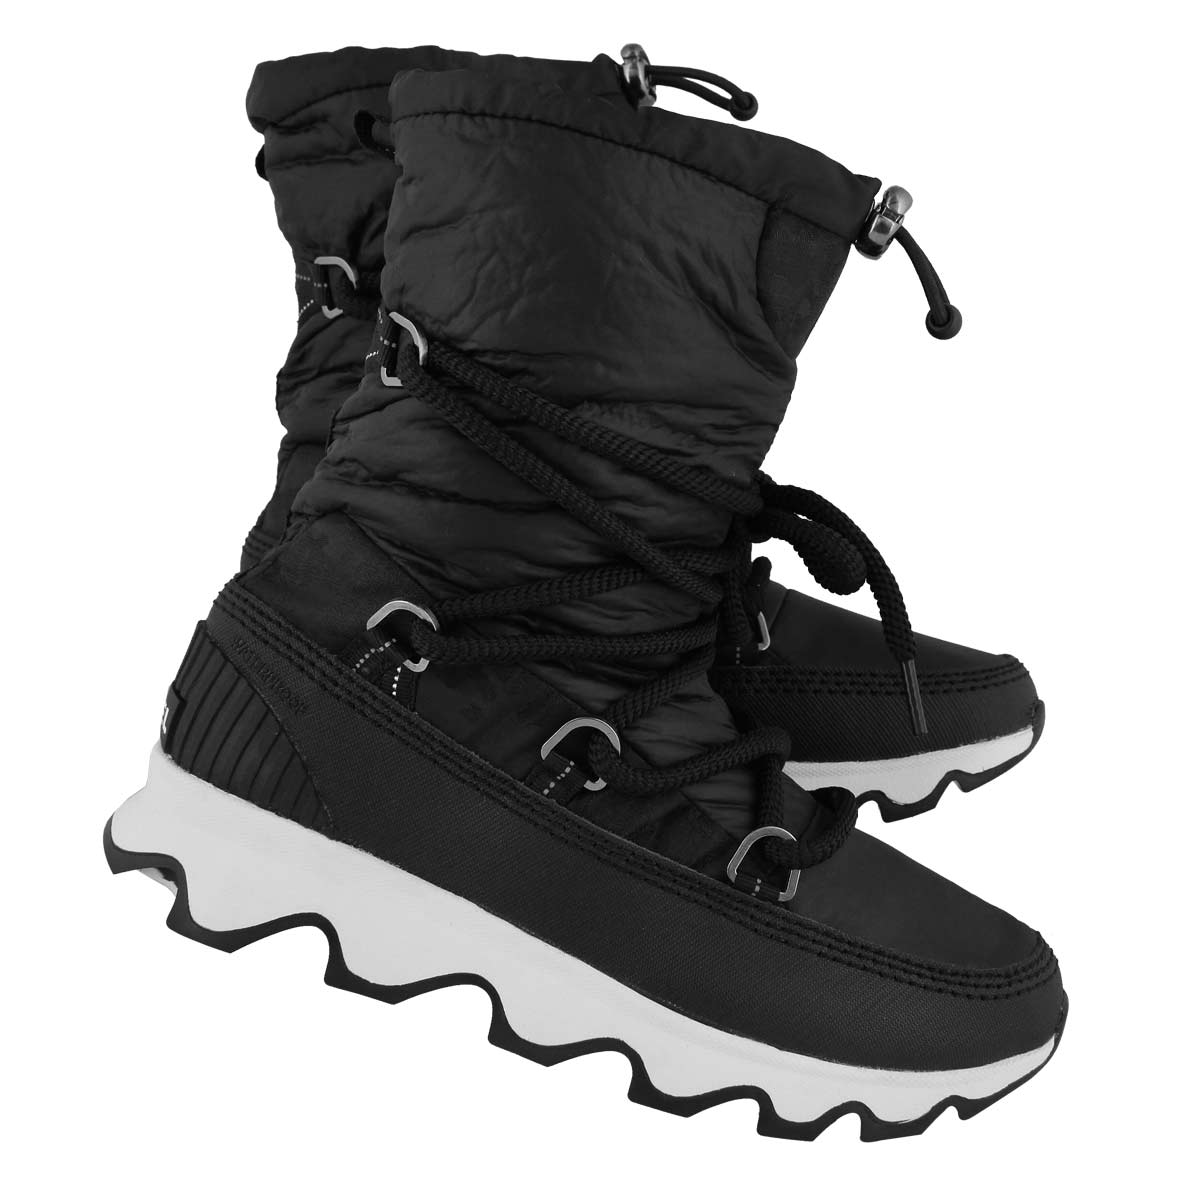 Lds Kinetic blk/wht wtrpf boot